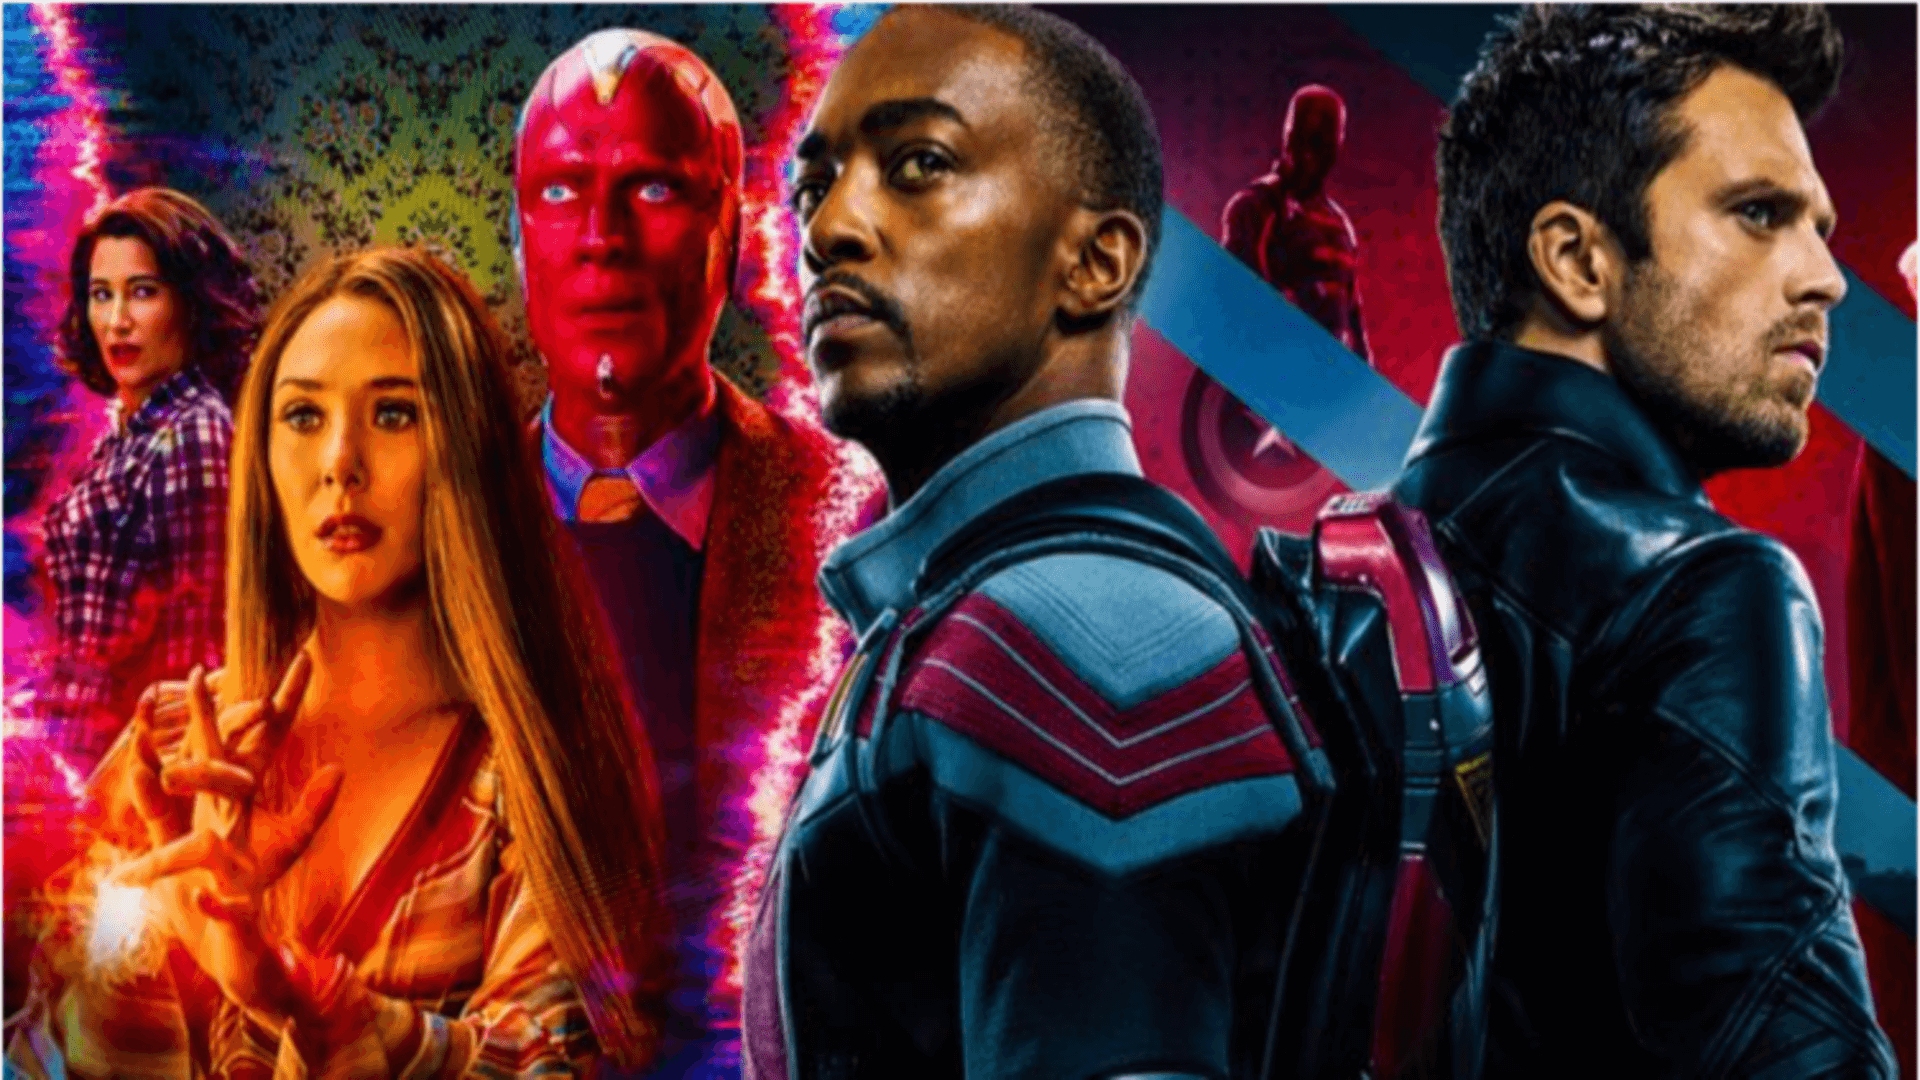 All Things Marvel 2021: An Update on What to Expect